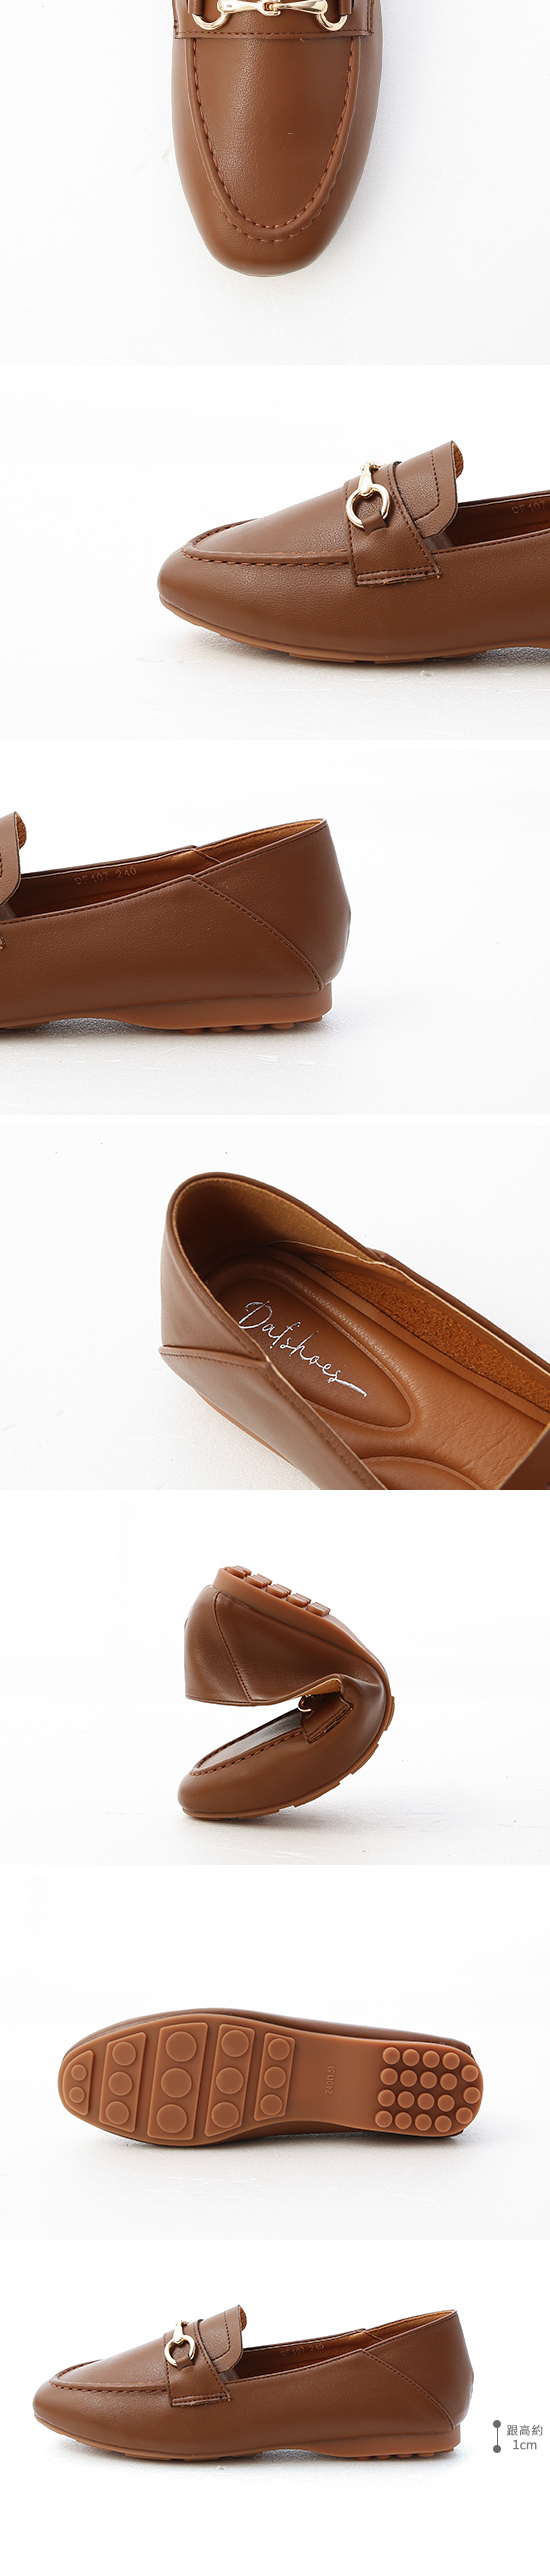 Soft Faux Leather Horsebit Loafers Brown